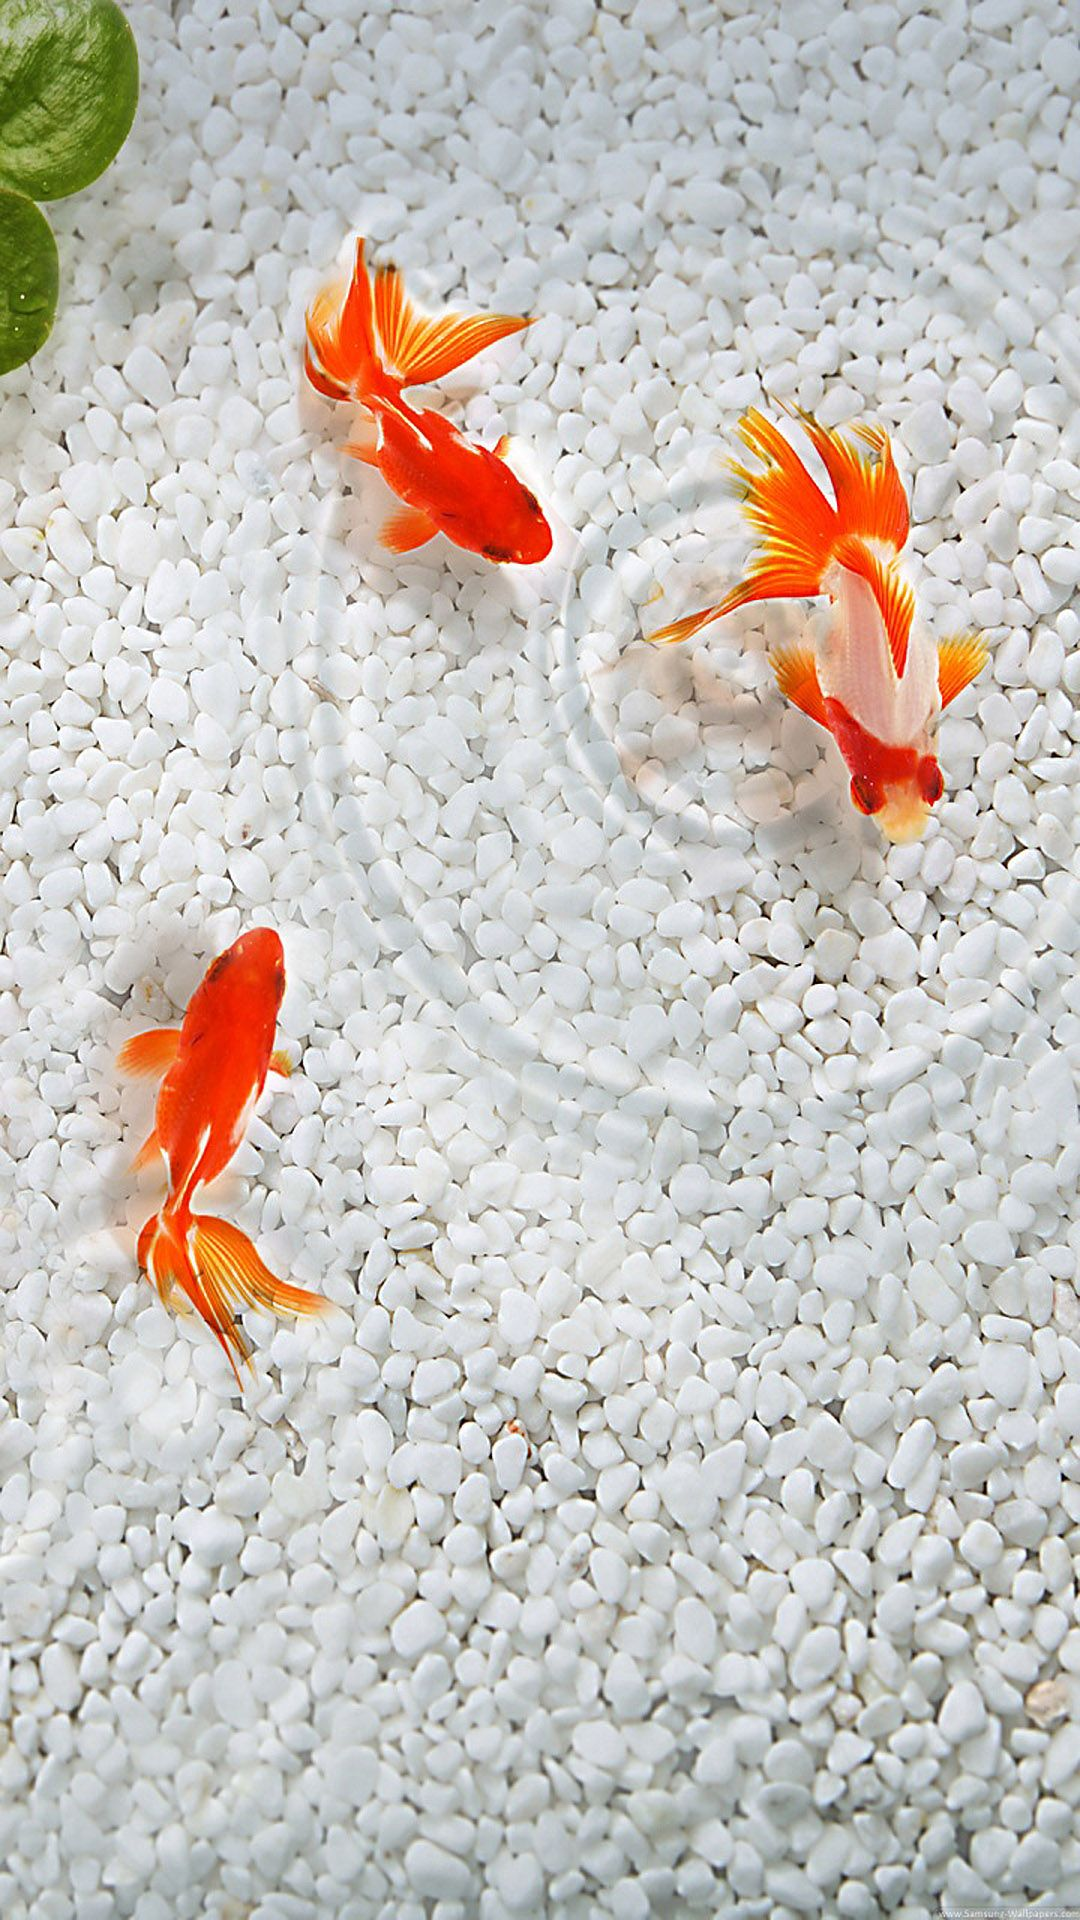 Japanese fish htc one wallpaper pinterest fish for Japanese pond fish